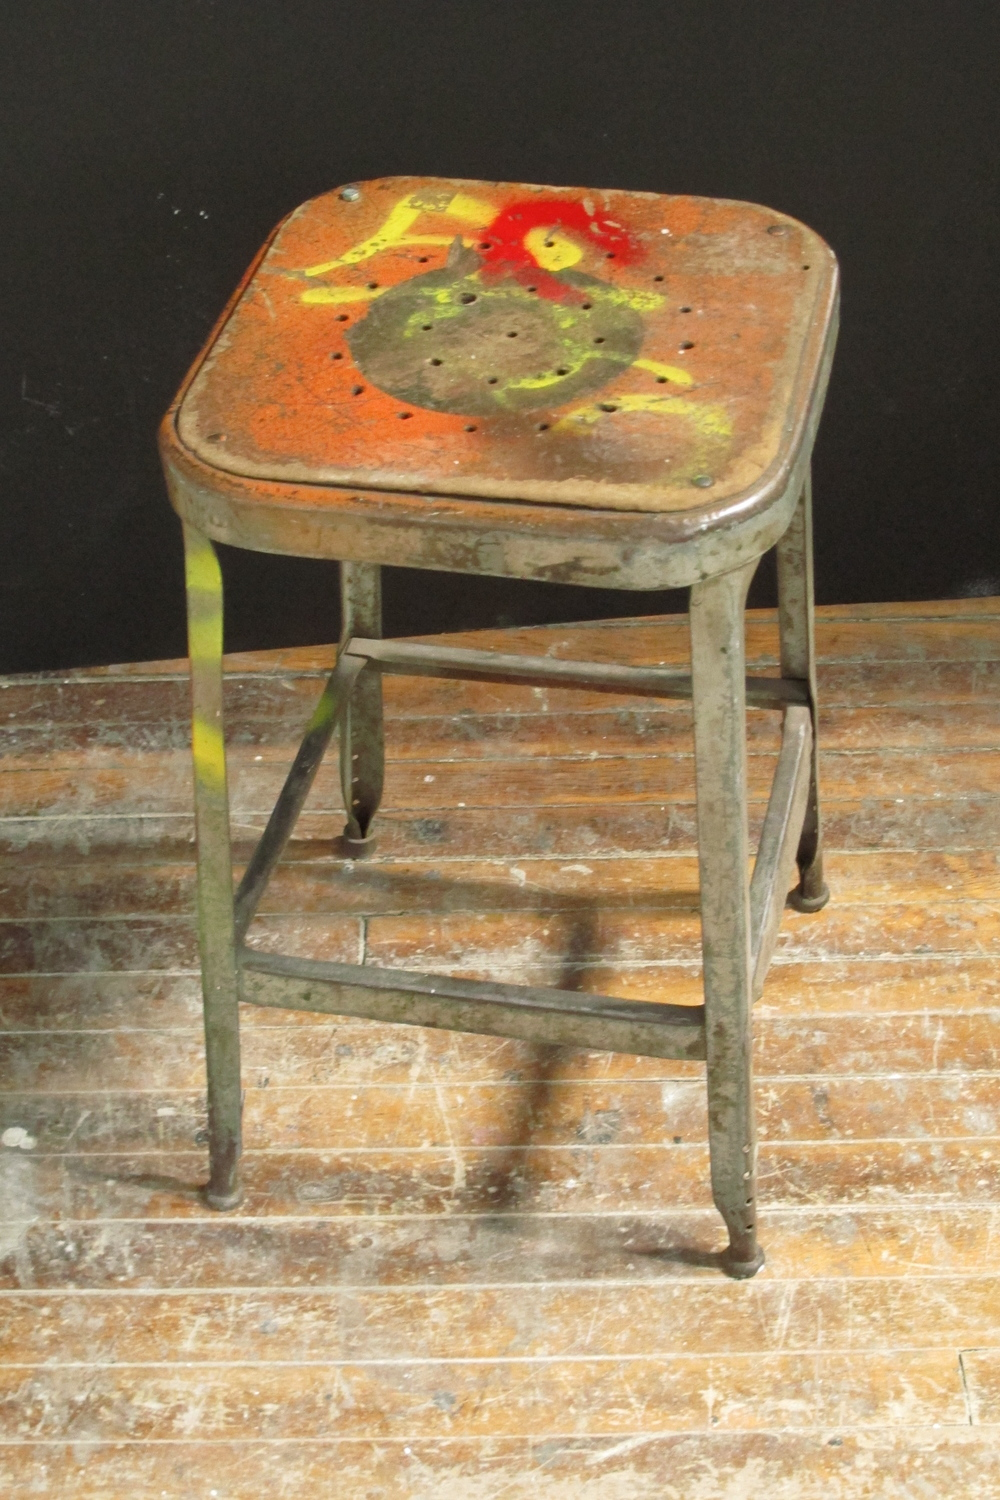 Metal Square 'paint-splattered' artist stool $30